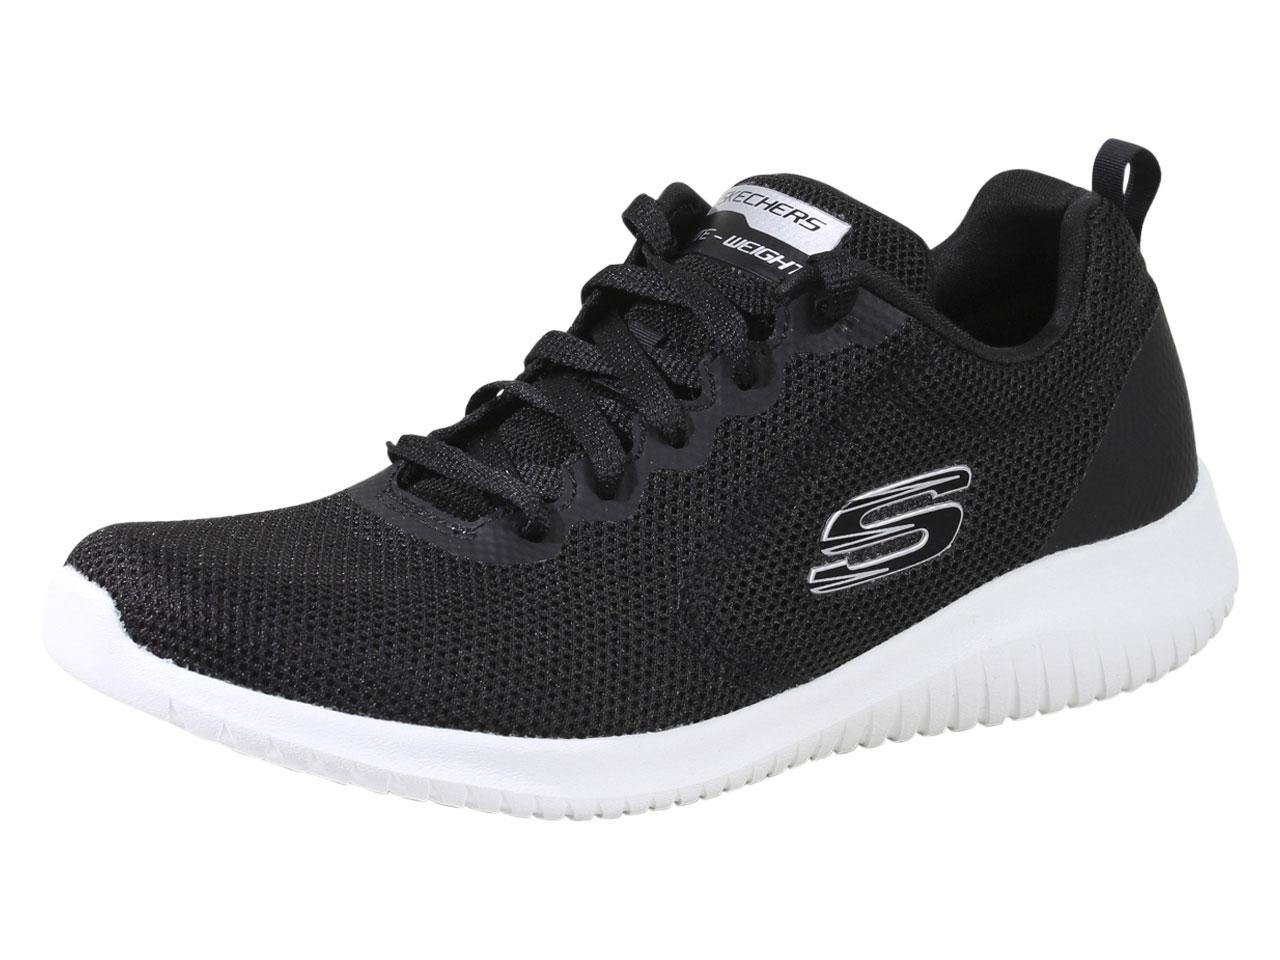 Skechers Women's Ultra Flex Free Spirits Memory Foam Sneakers Shoes